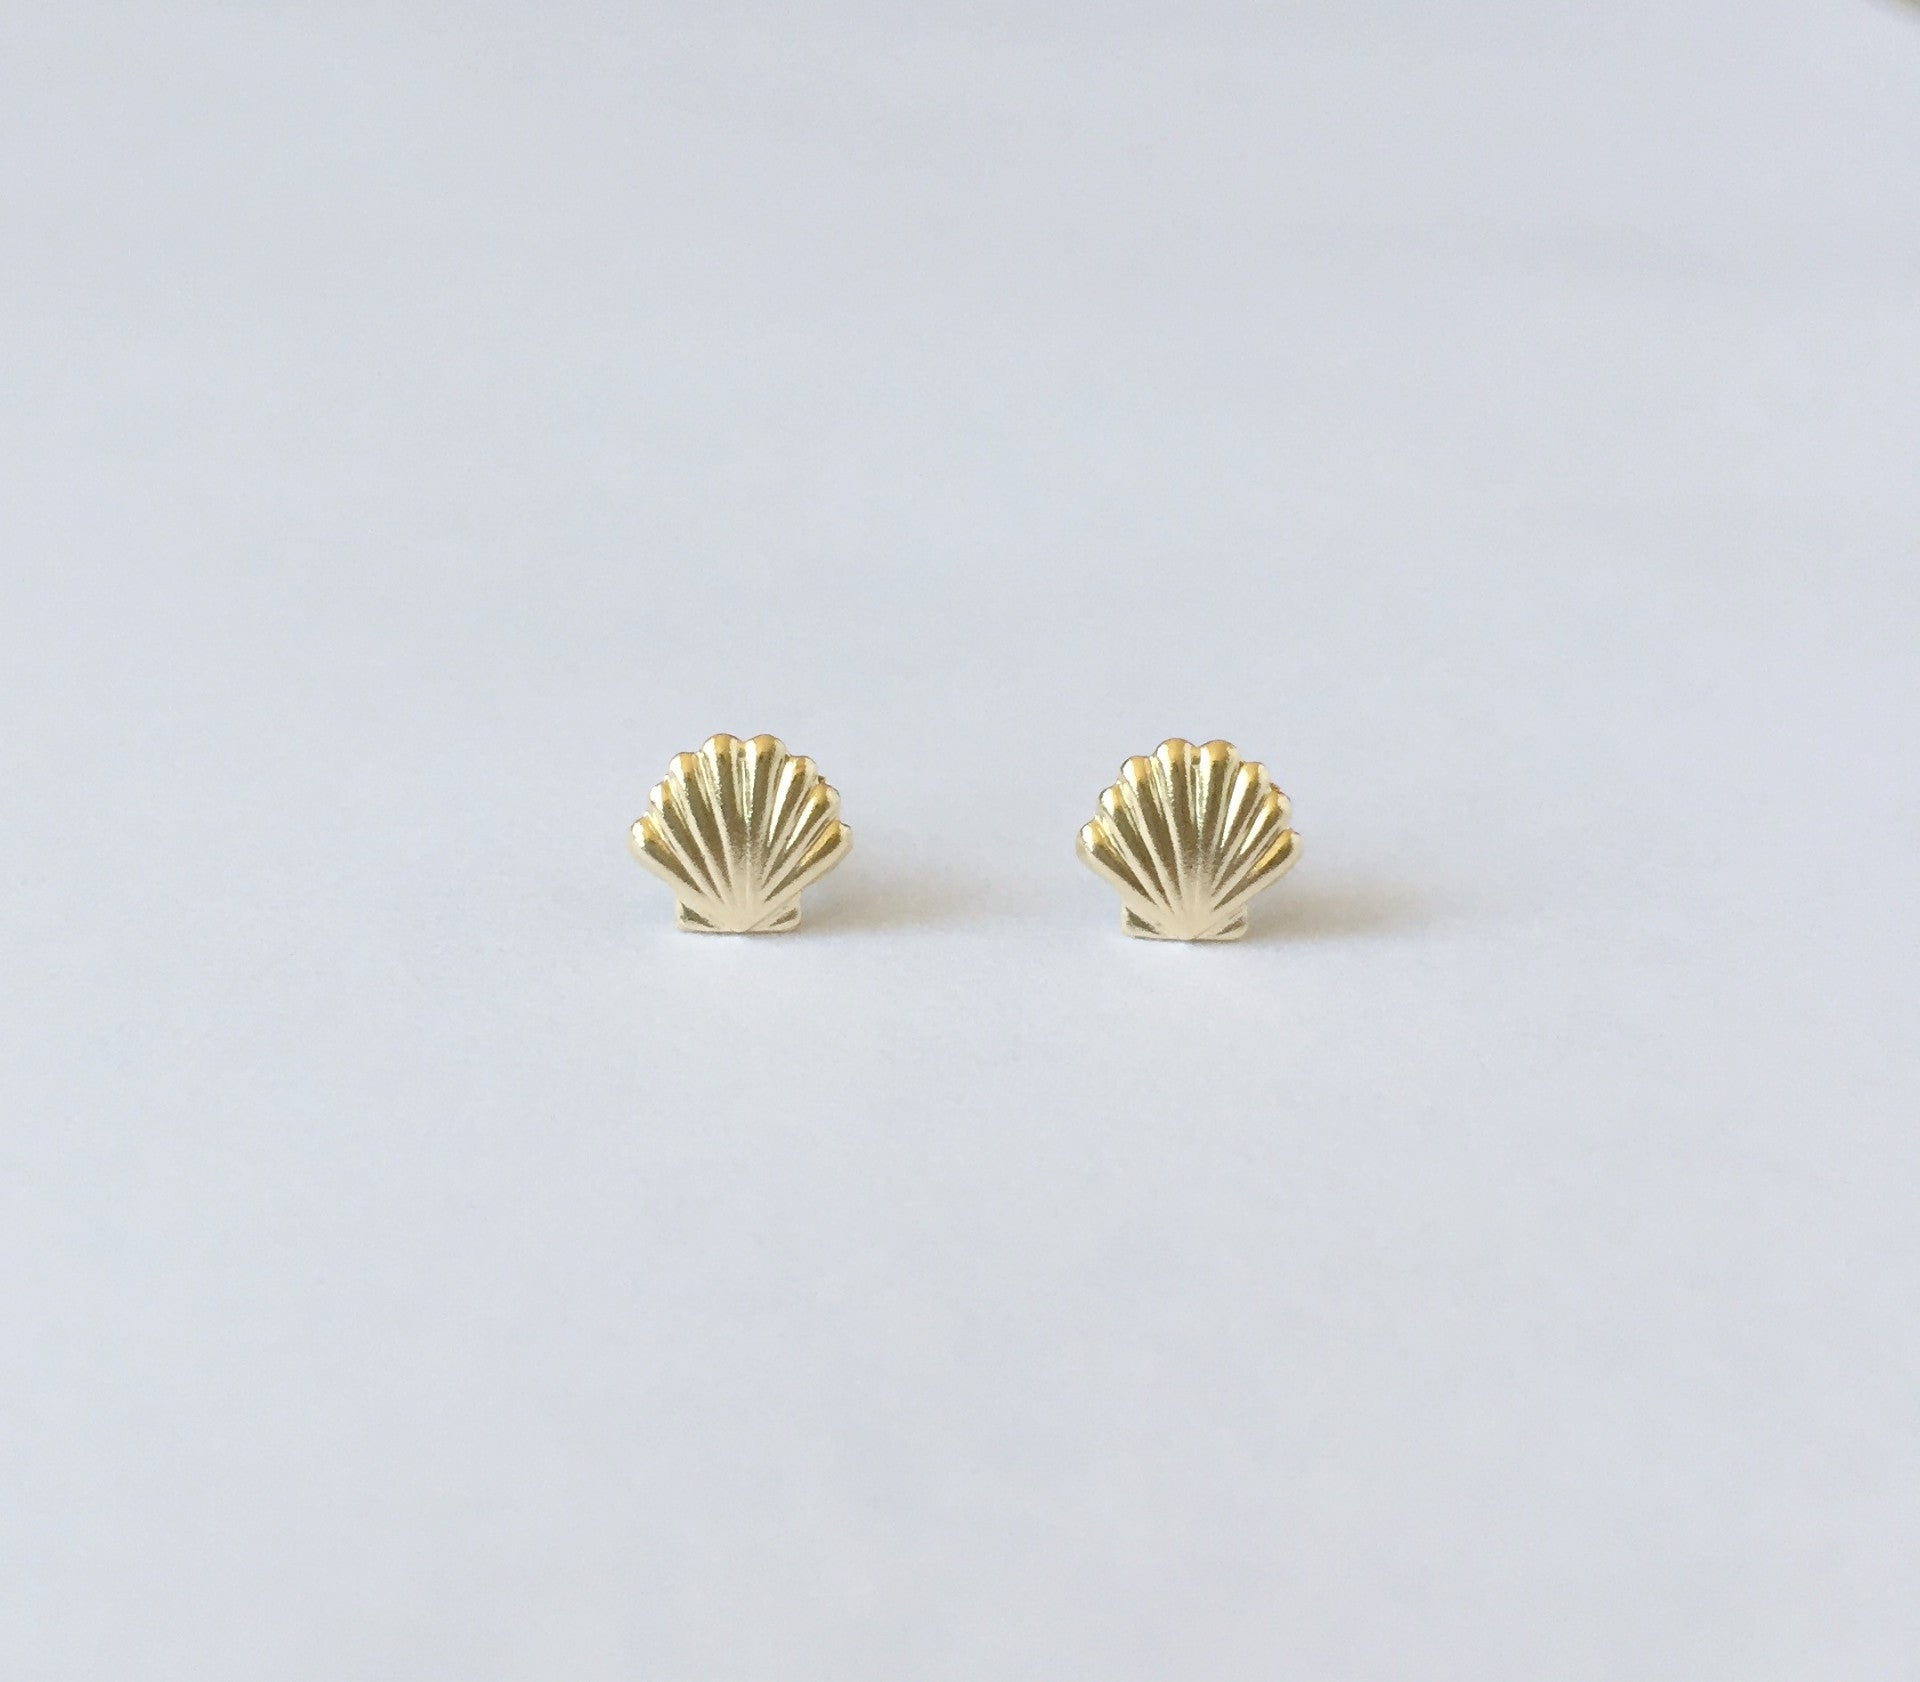 stud ring gold nose tiny tragus pin cartilage